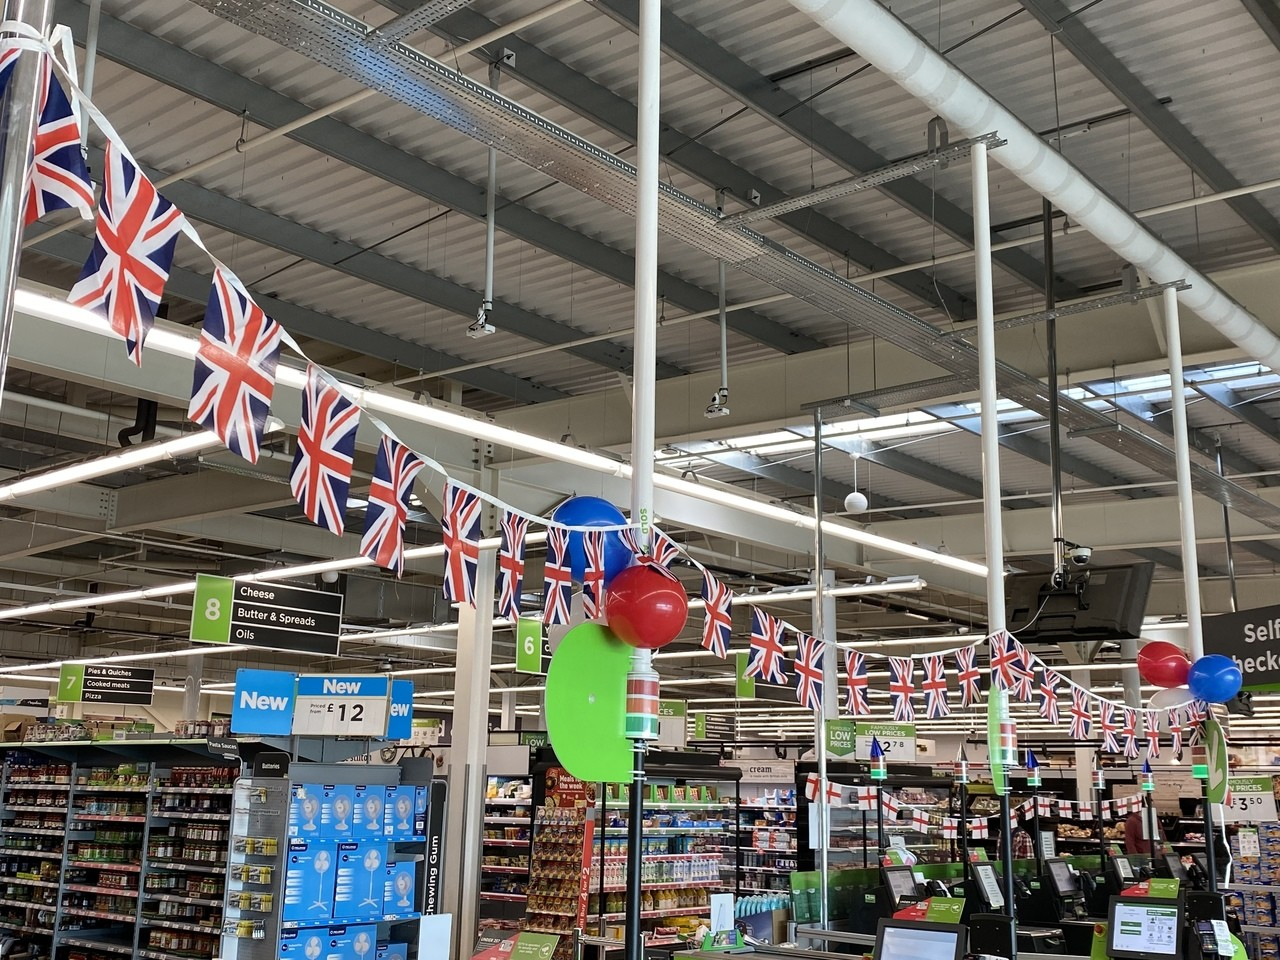 Asda Ware VE Day🇬🇧 | Asda Ware